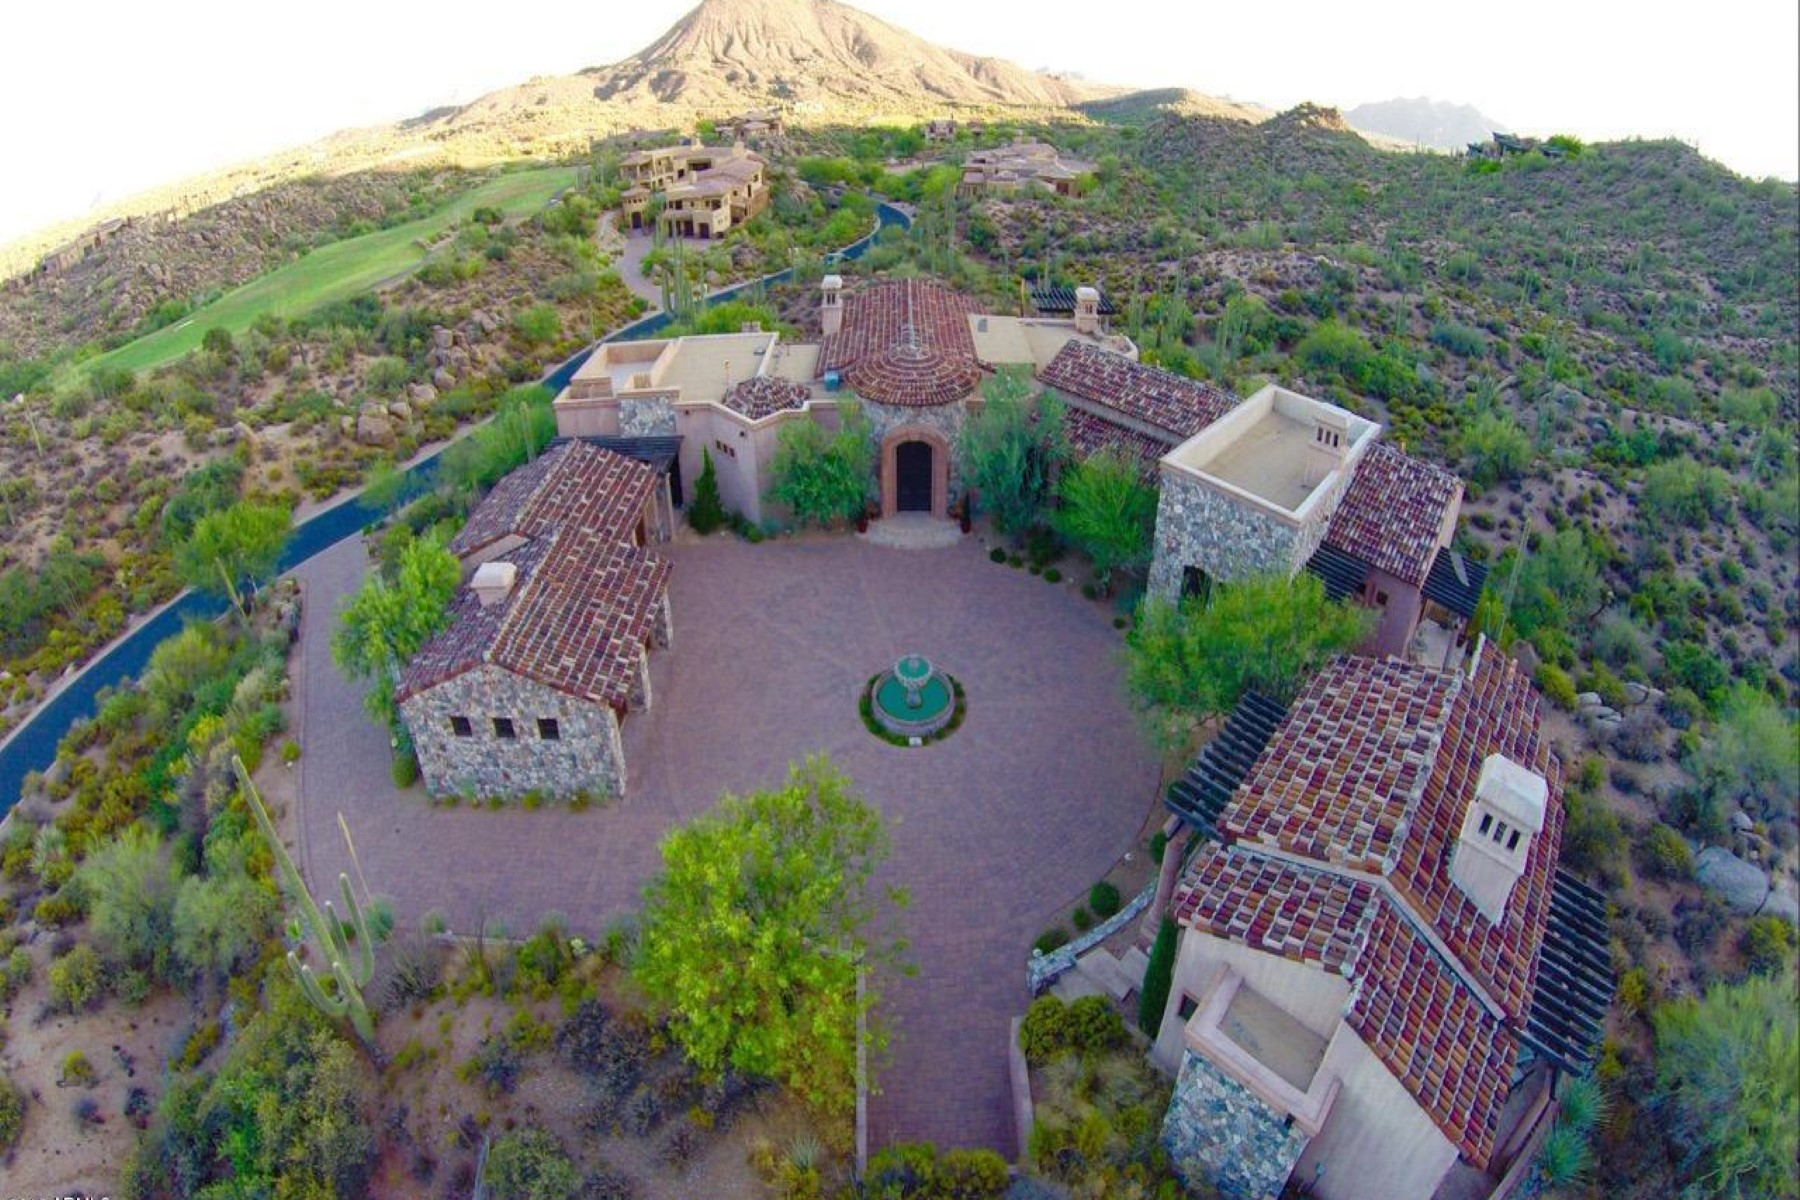 獨棟家庭住宅 為 出售 在 Beautiful private Tuscan home is situated on 2.2 acres in Saguaro Forest 41324 N 95th Street Scottsdale, 亞利桑那州, 85262 美國